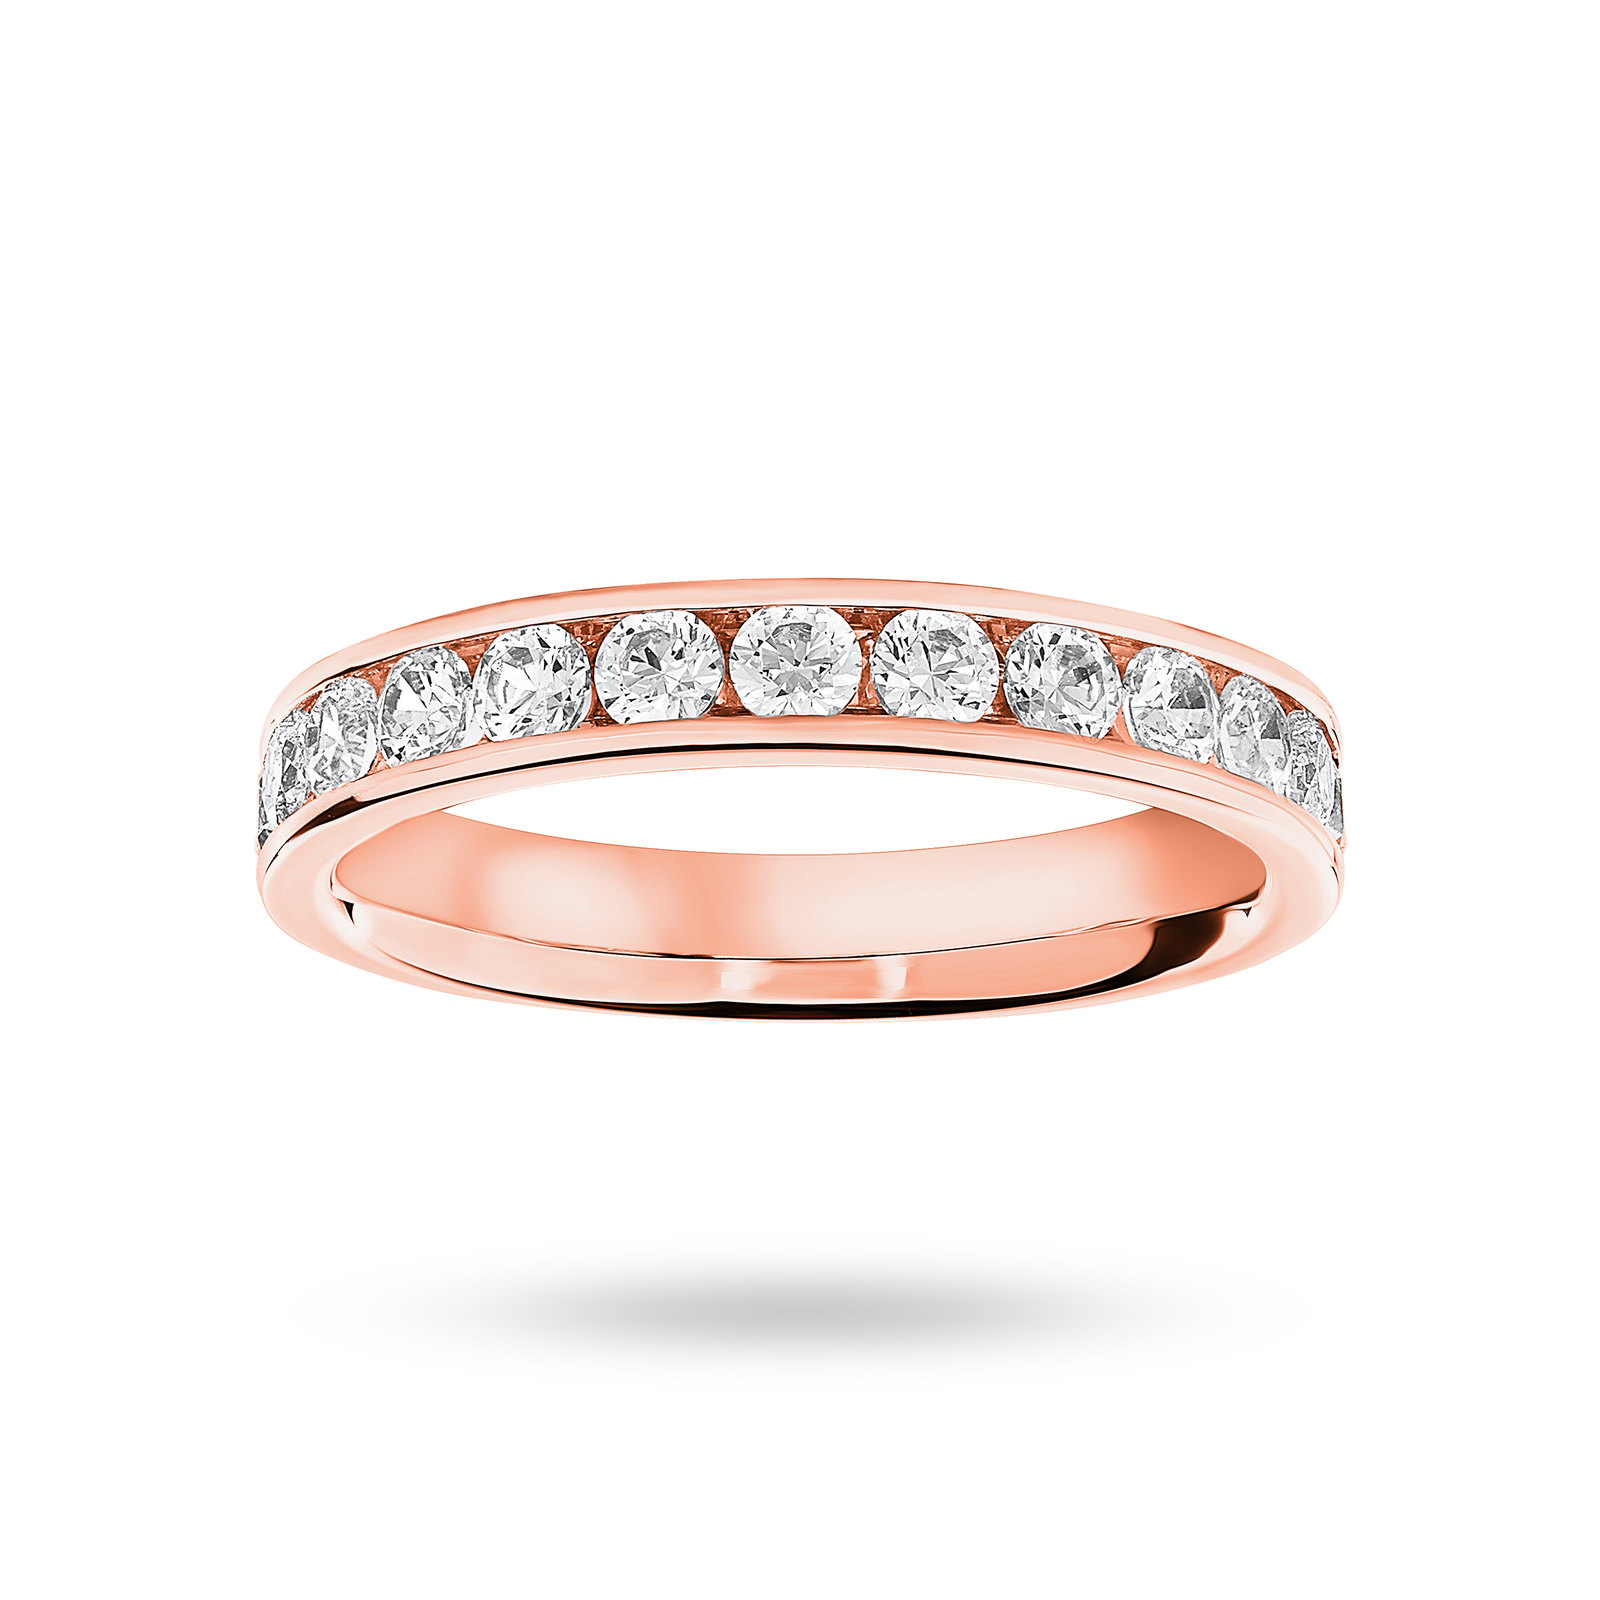 18 Carat Rose Gold 0.75 Carat Brilliant Cut Half Eternity Ring